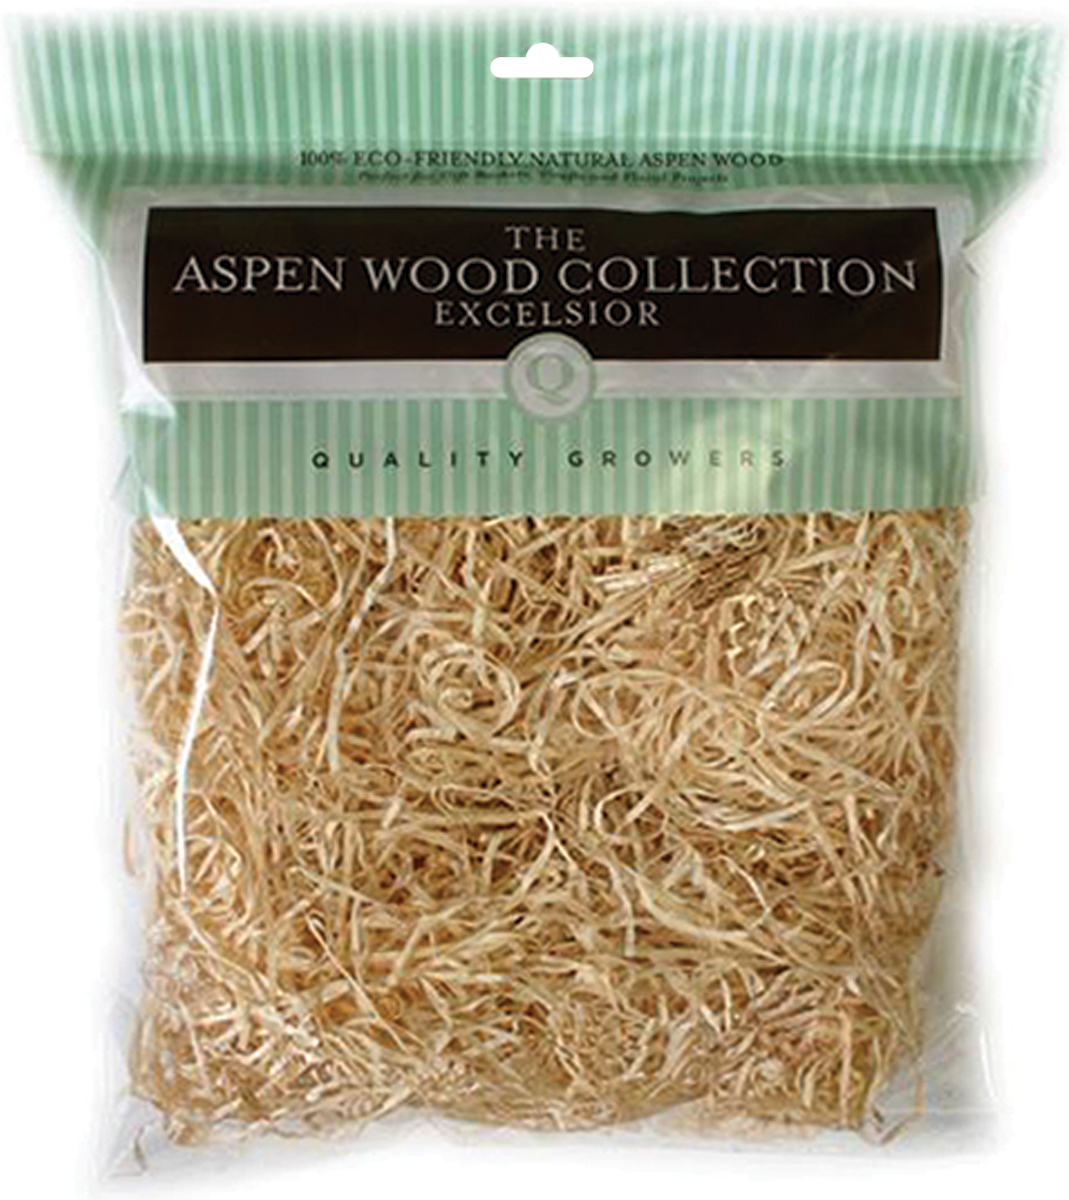 Quality Growers Aspenwood Excelsior 328 Cubic Inches-Natural